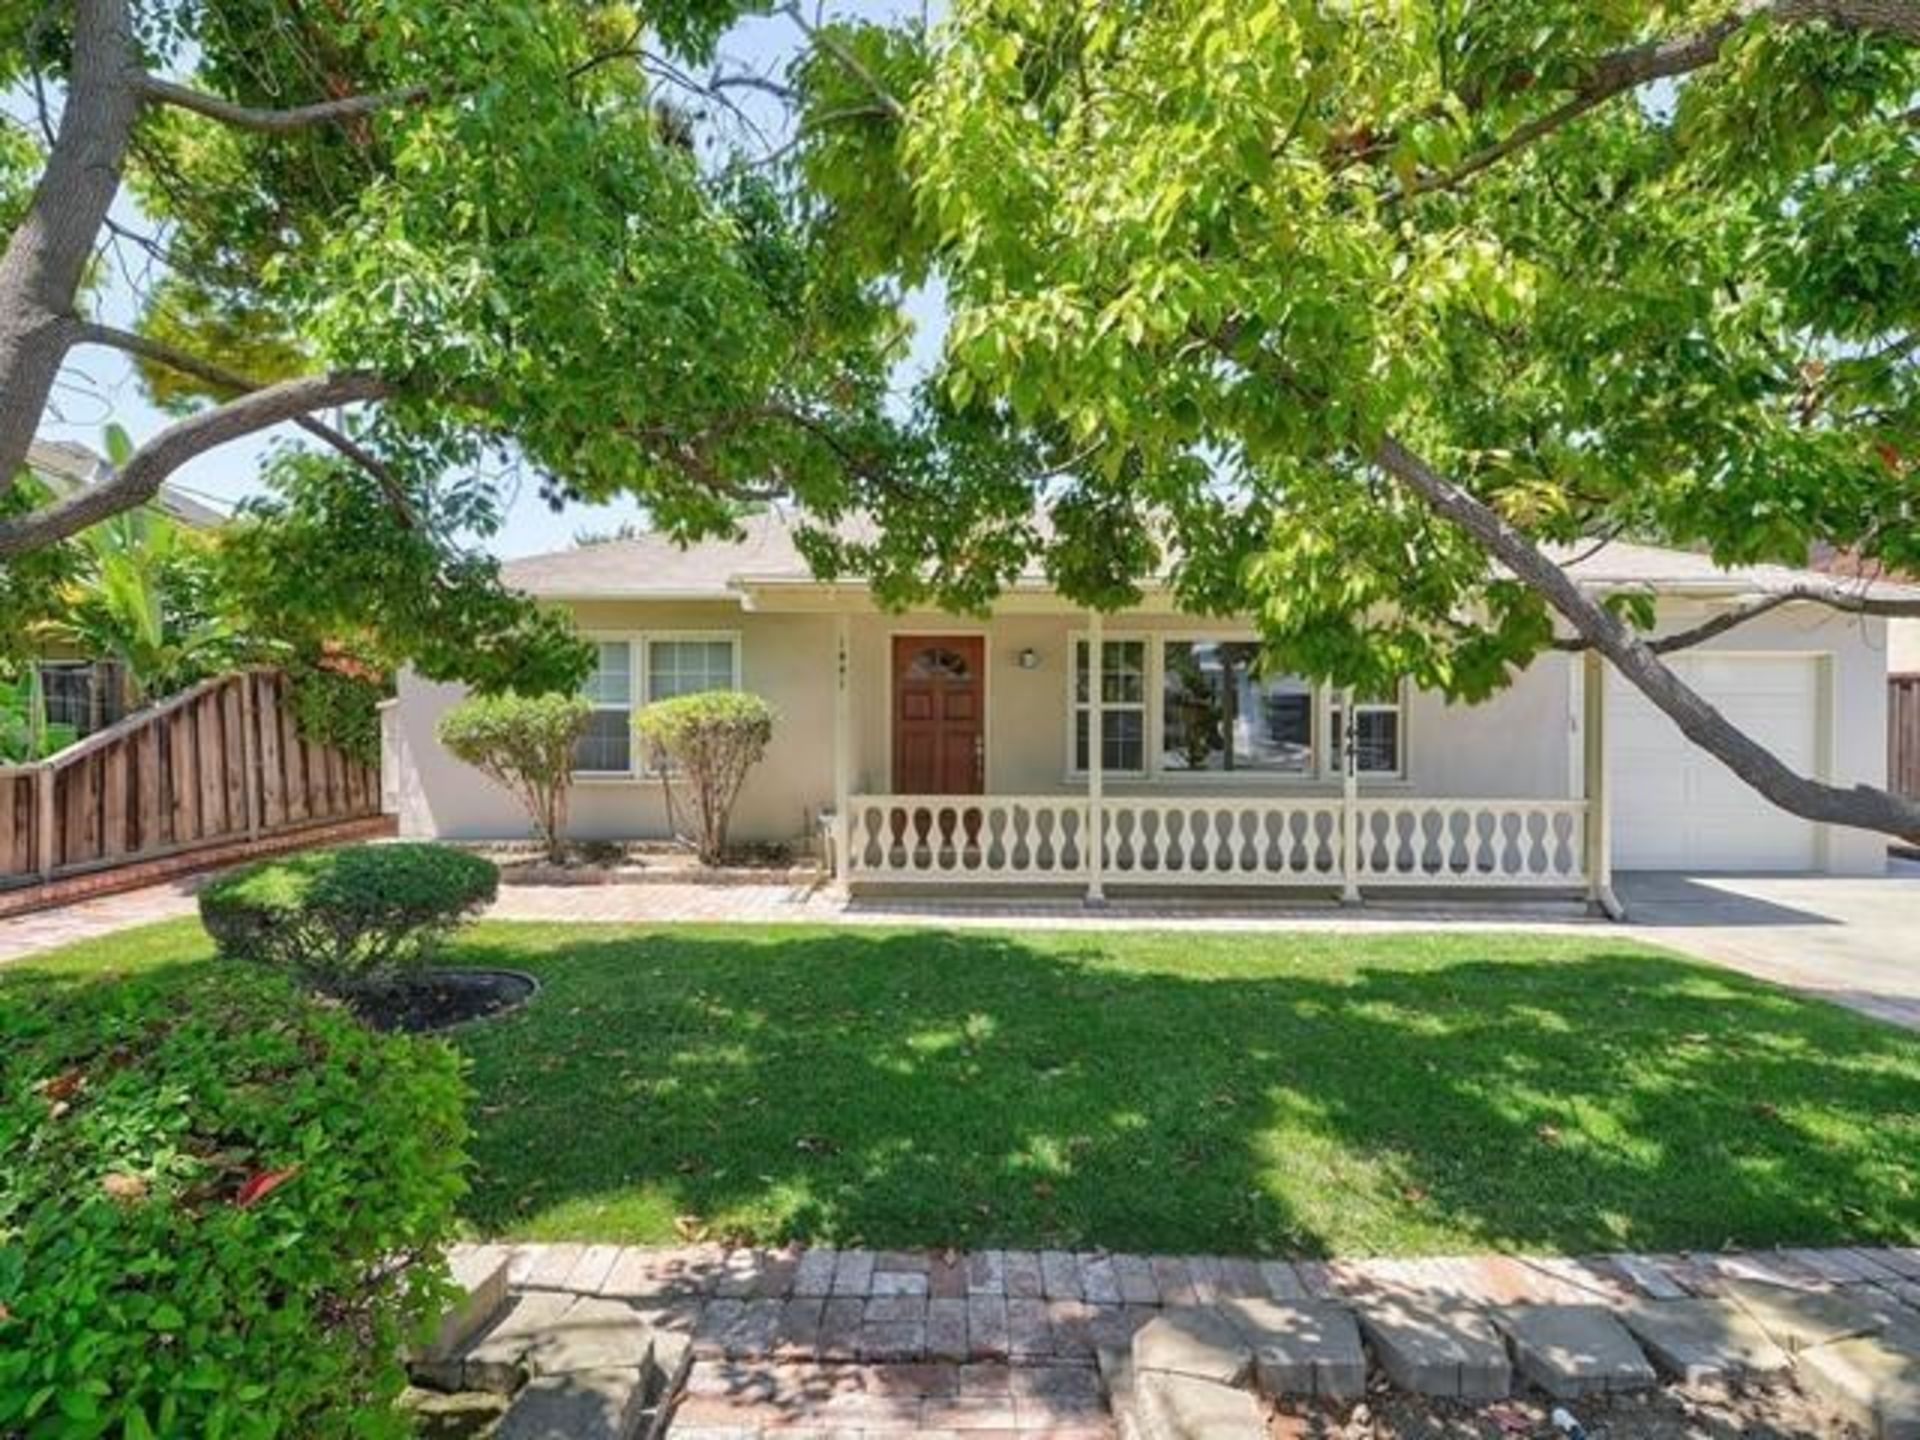 SOLD! – 1441 Hampton, Sunnyvale – Happy 1st time home buyers!